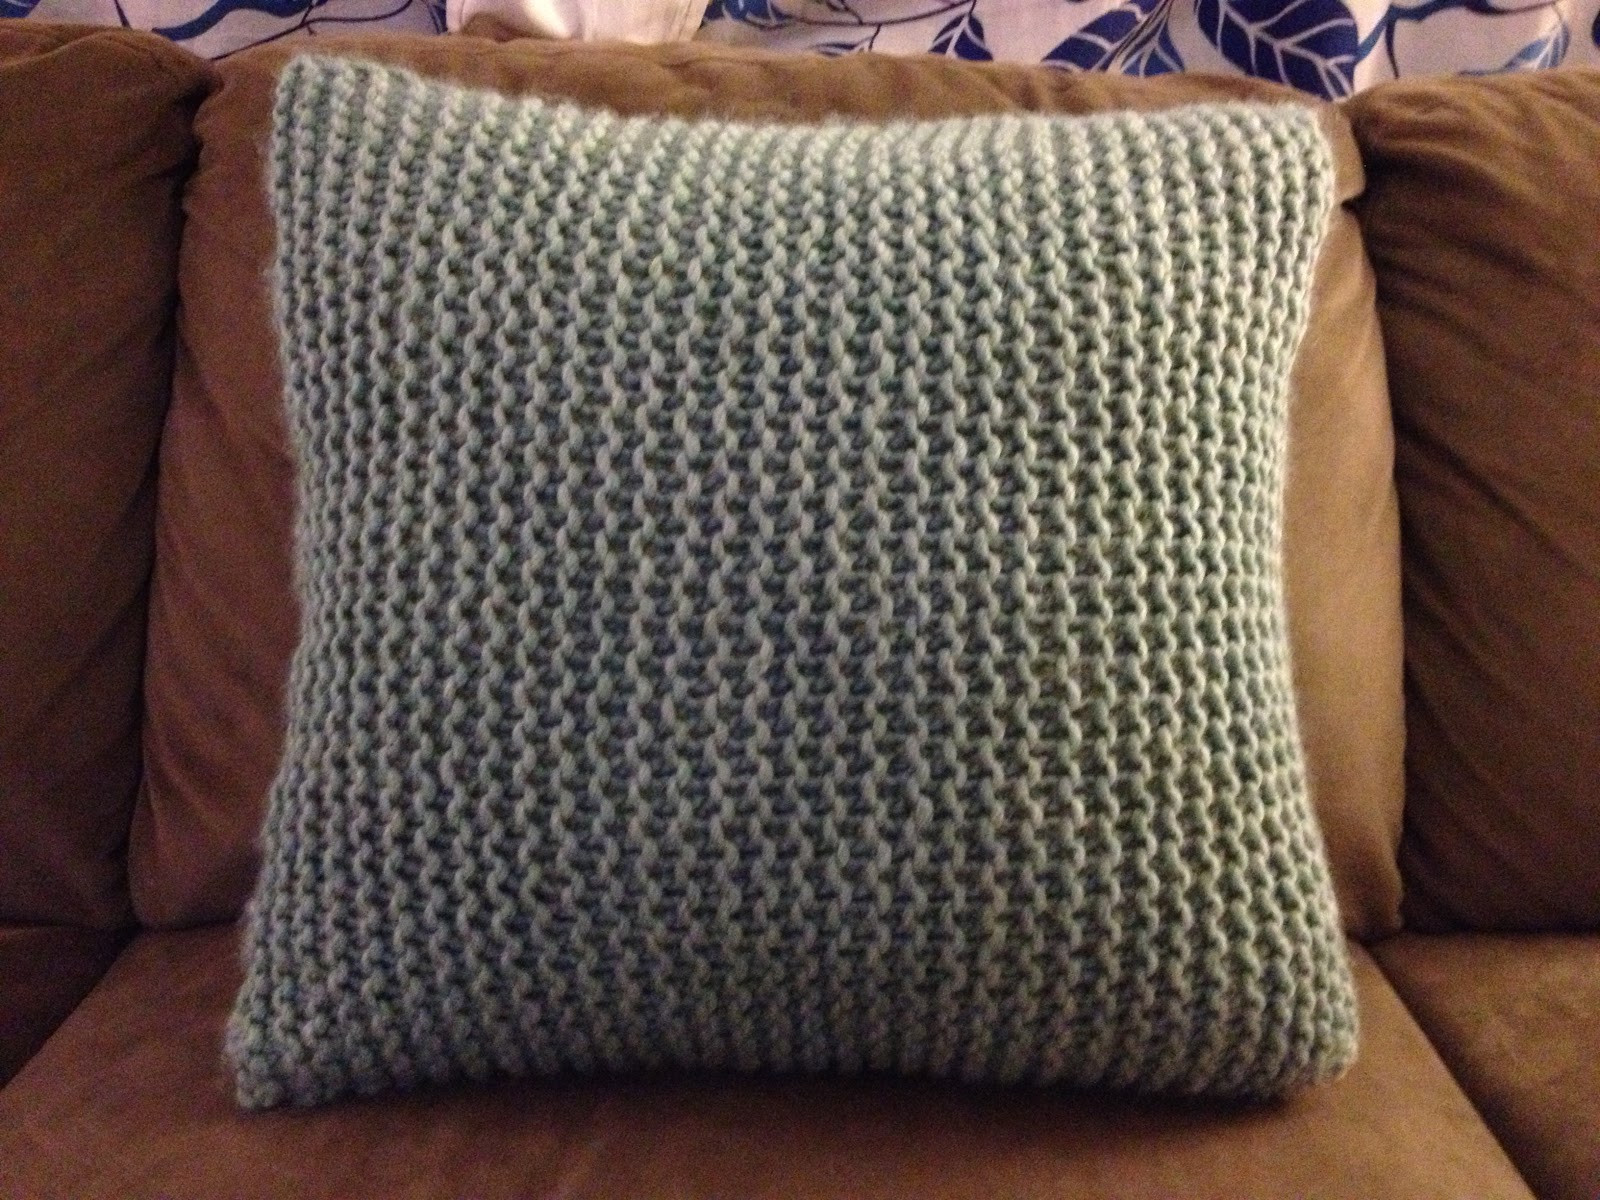 Knit Pillow Awesome Make Bake and Love Knit Pillow Of Charming 46 Pics Knit Pillow